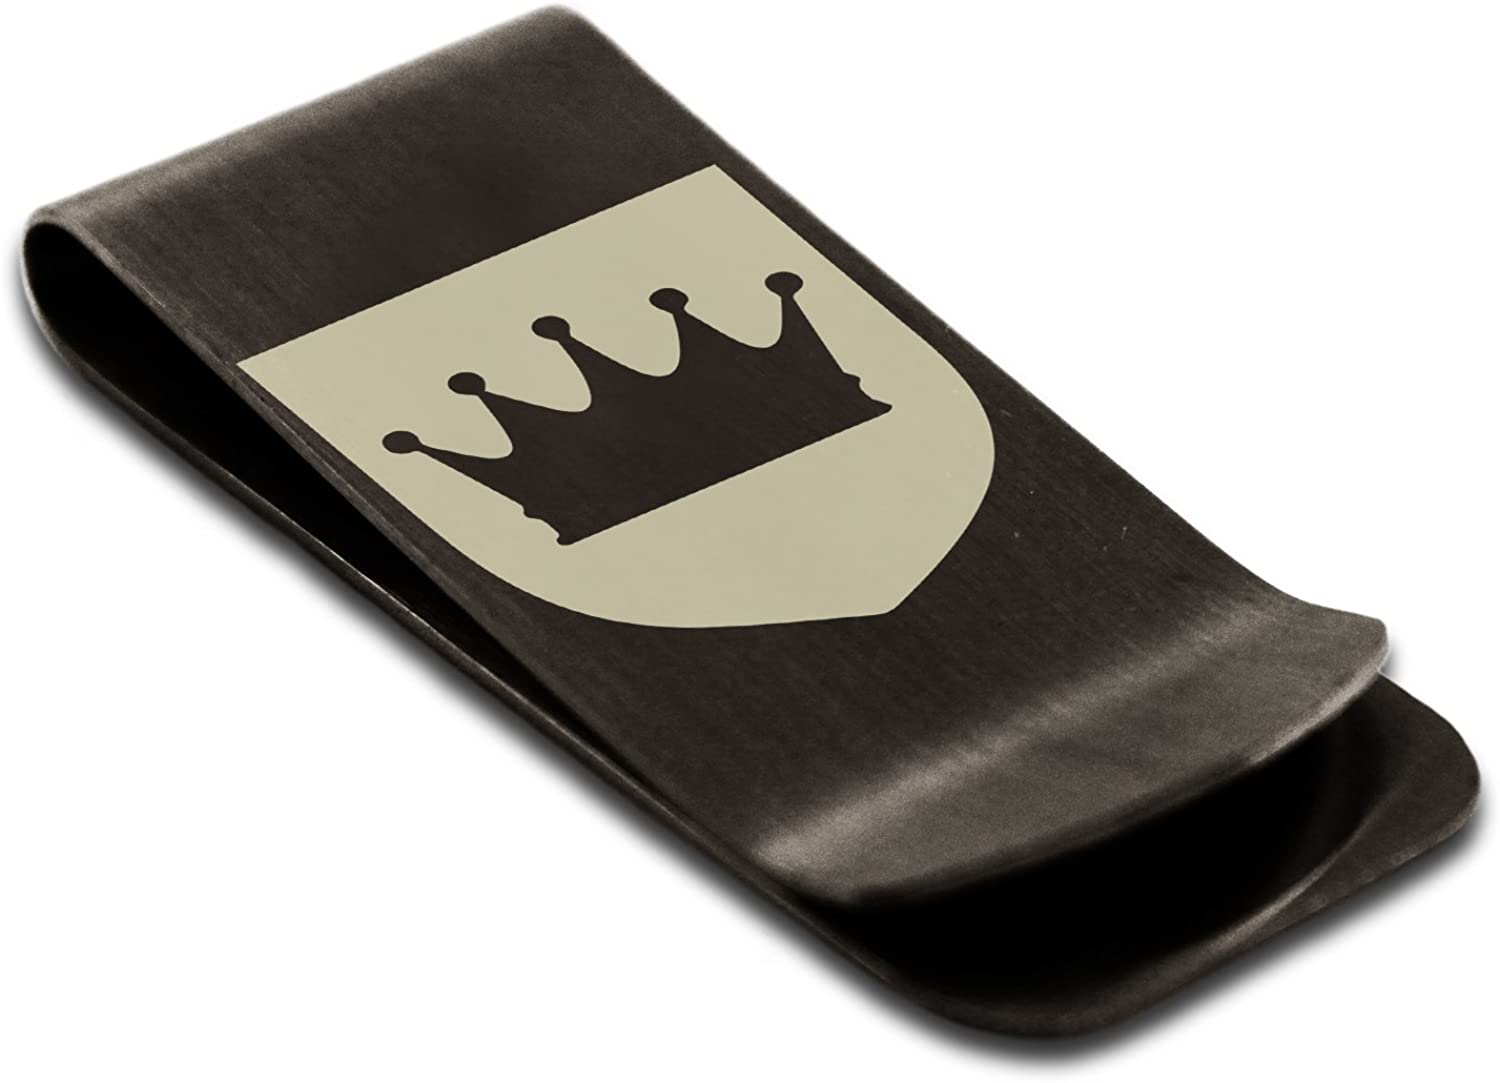 Stainless Steel Crown Royal Coat of Arms Shield Symbol Money Clip Credit Card Holder